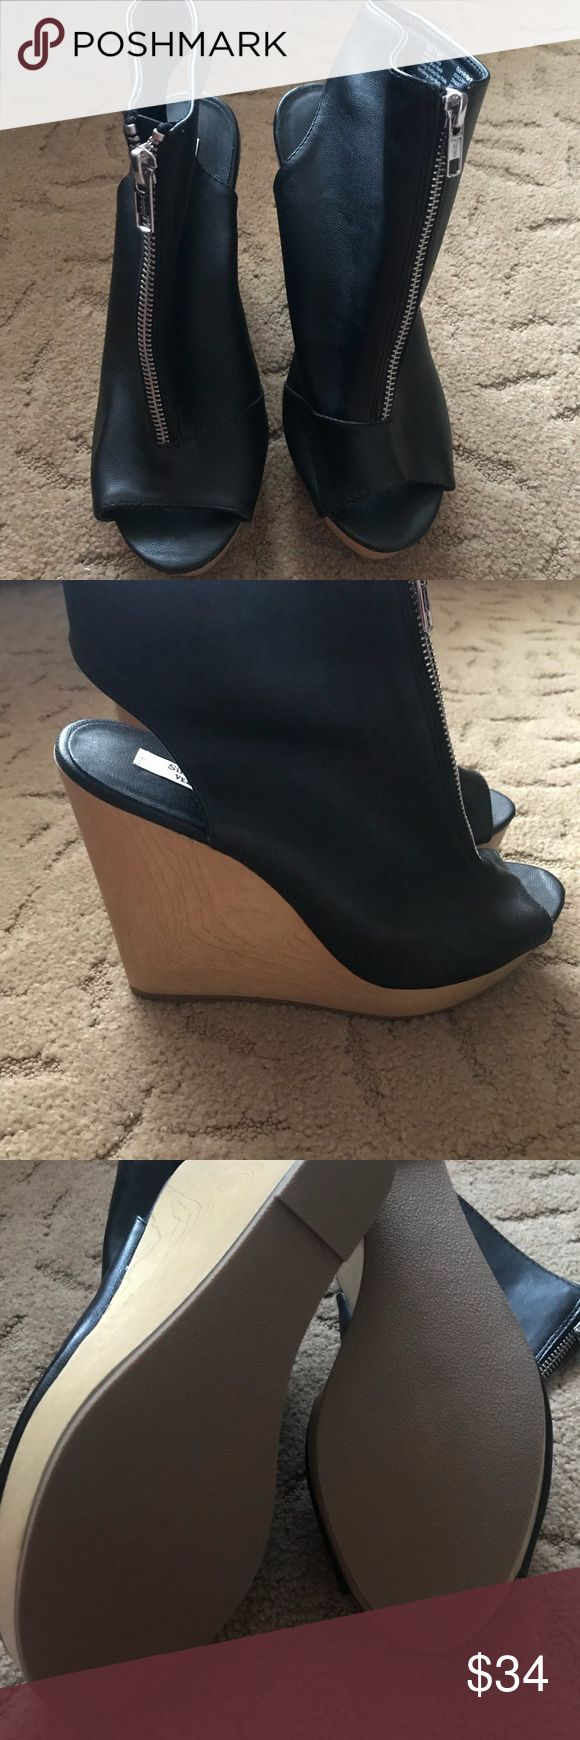 NWOT Simply Vera Vera Wang Wedges (new) Simply Vera Vera Wang Faux Leather & Wood Zipper Wedge brand new in excellent condition size 8 Simply Vera Vera Wang Shoes Wedges